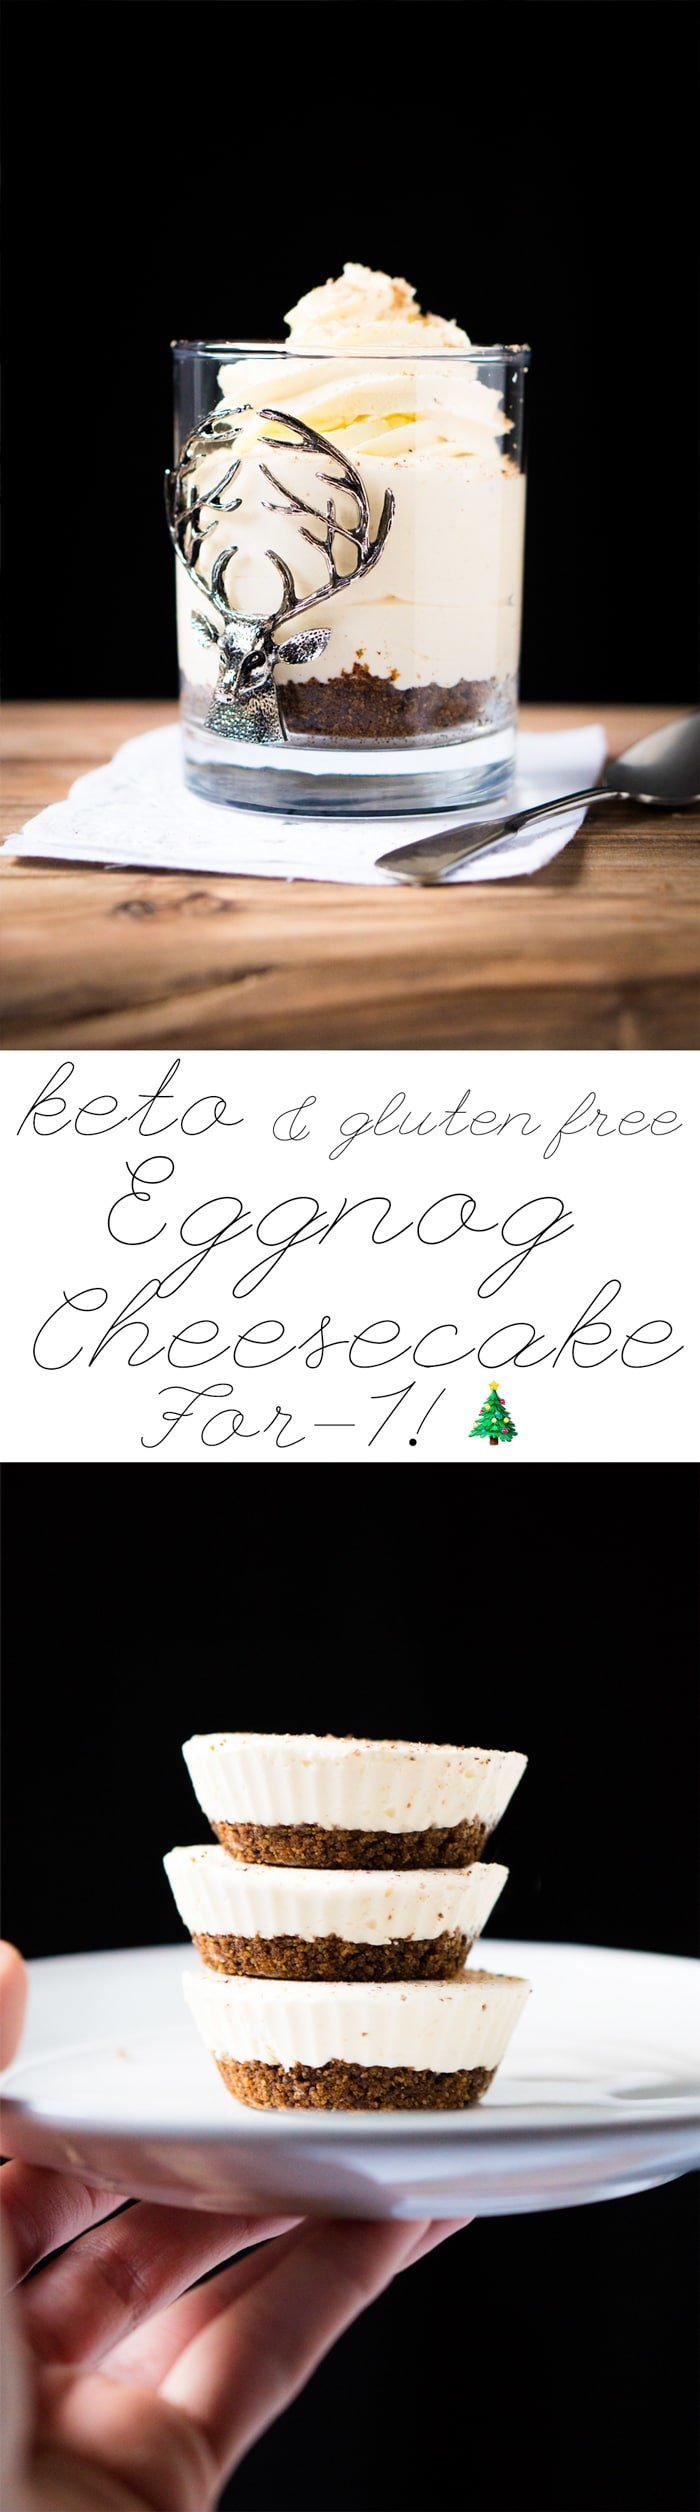 No-Bake Keto Eggnog Cheesecake For 1! 🎄 #ketocheesecake #lowcarbcheesecake